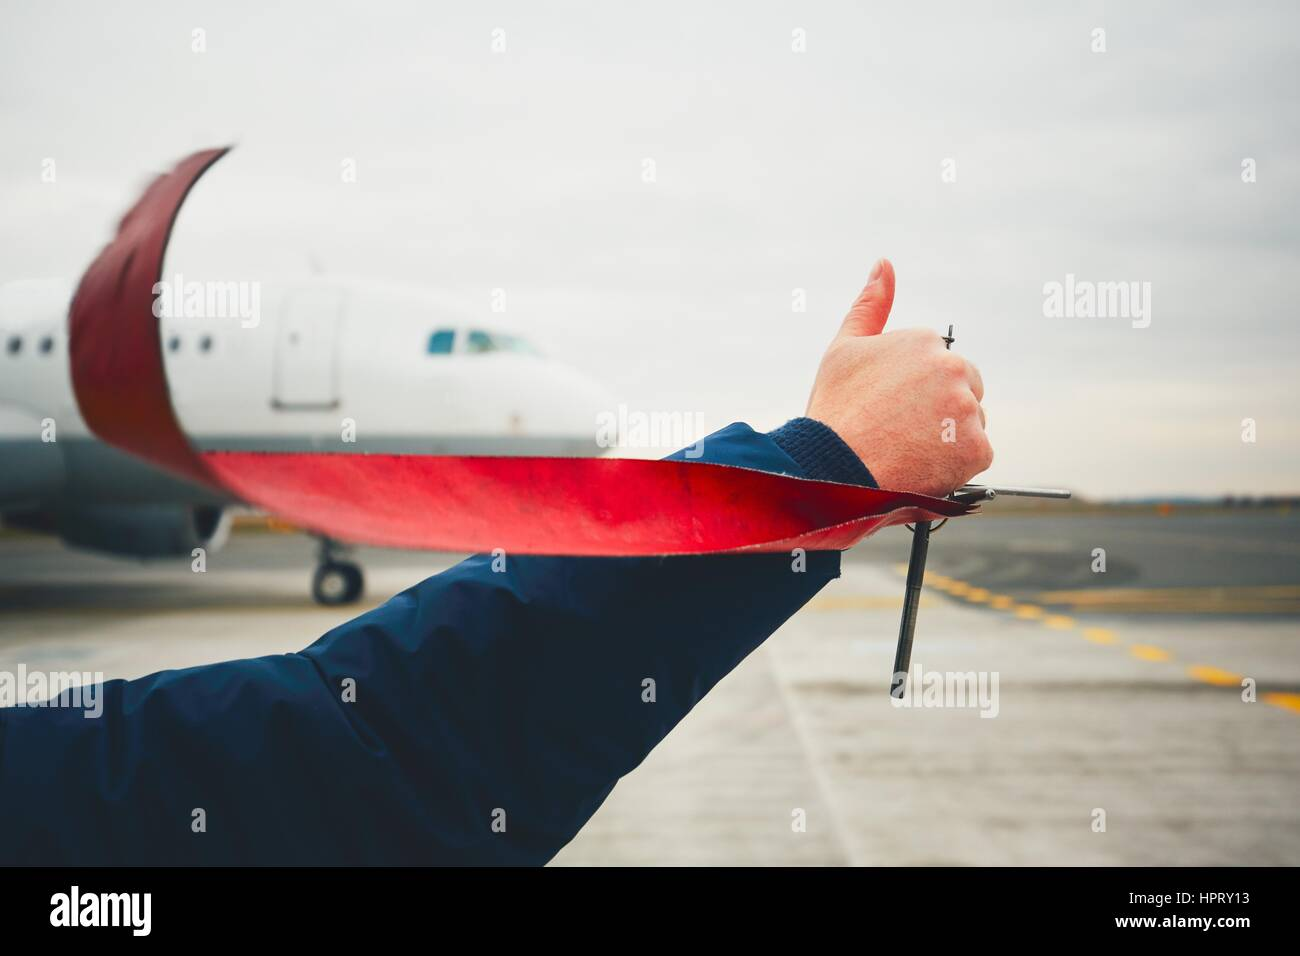 Member of ground crew is showing OK sign to pilot before take off. - Stock Image